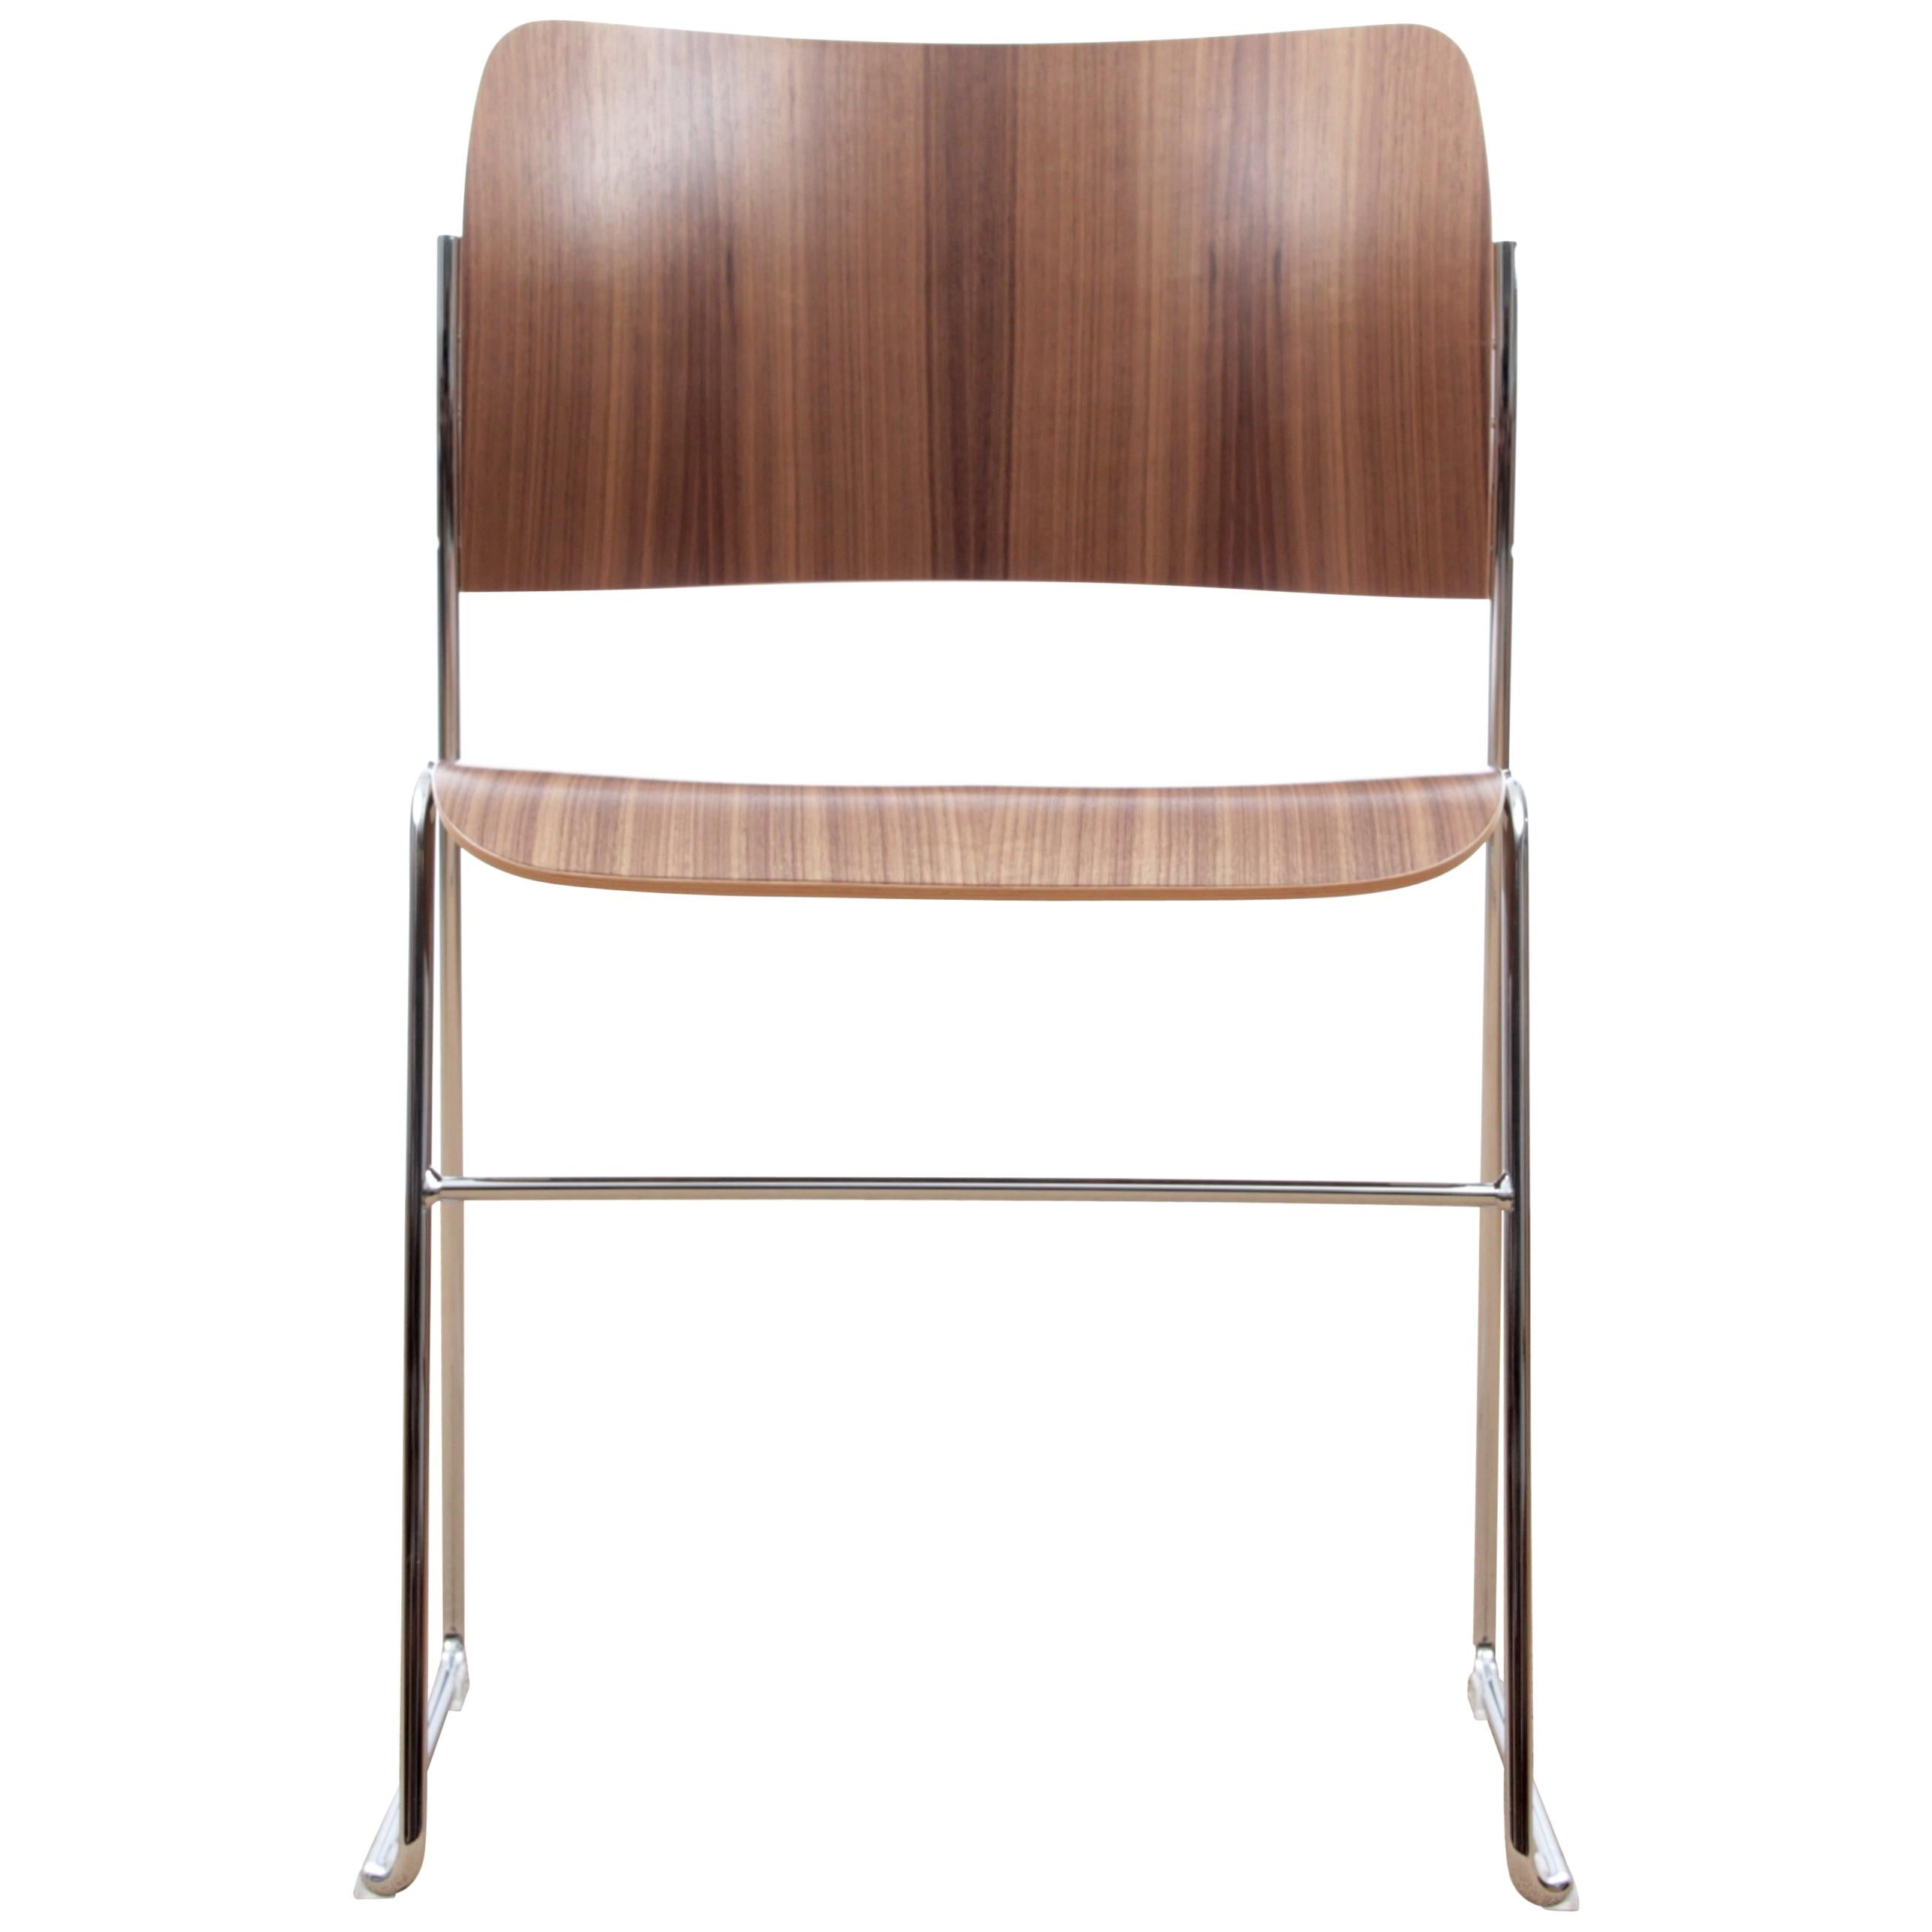 david rowland metal chair steel long 40 4 by new edition for sale at 1stdibs